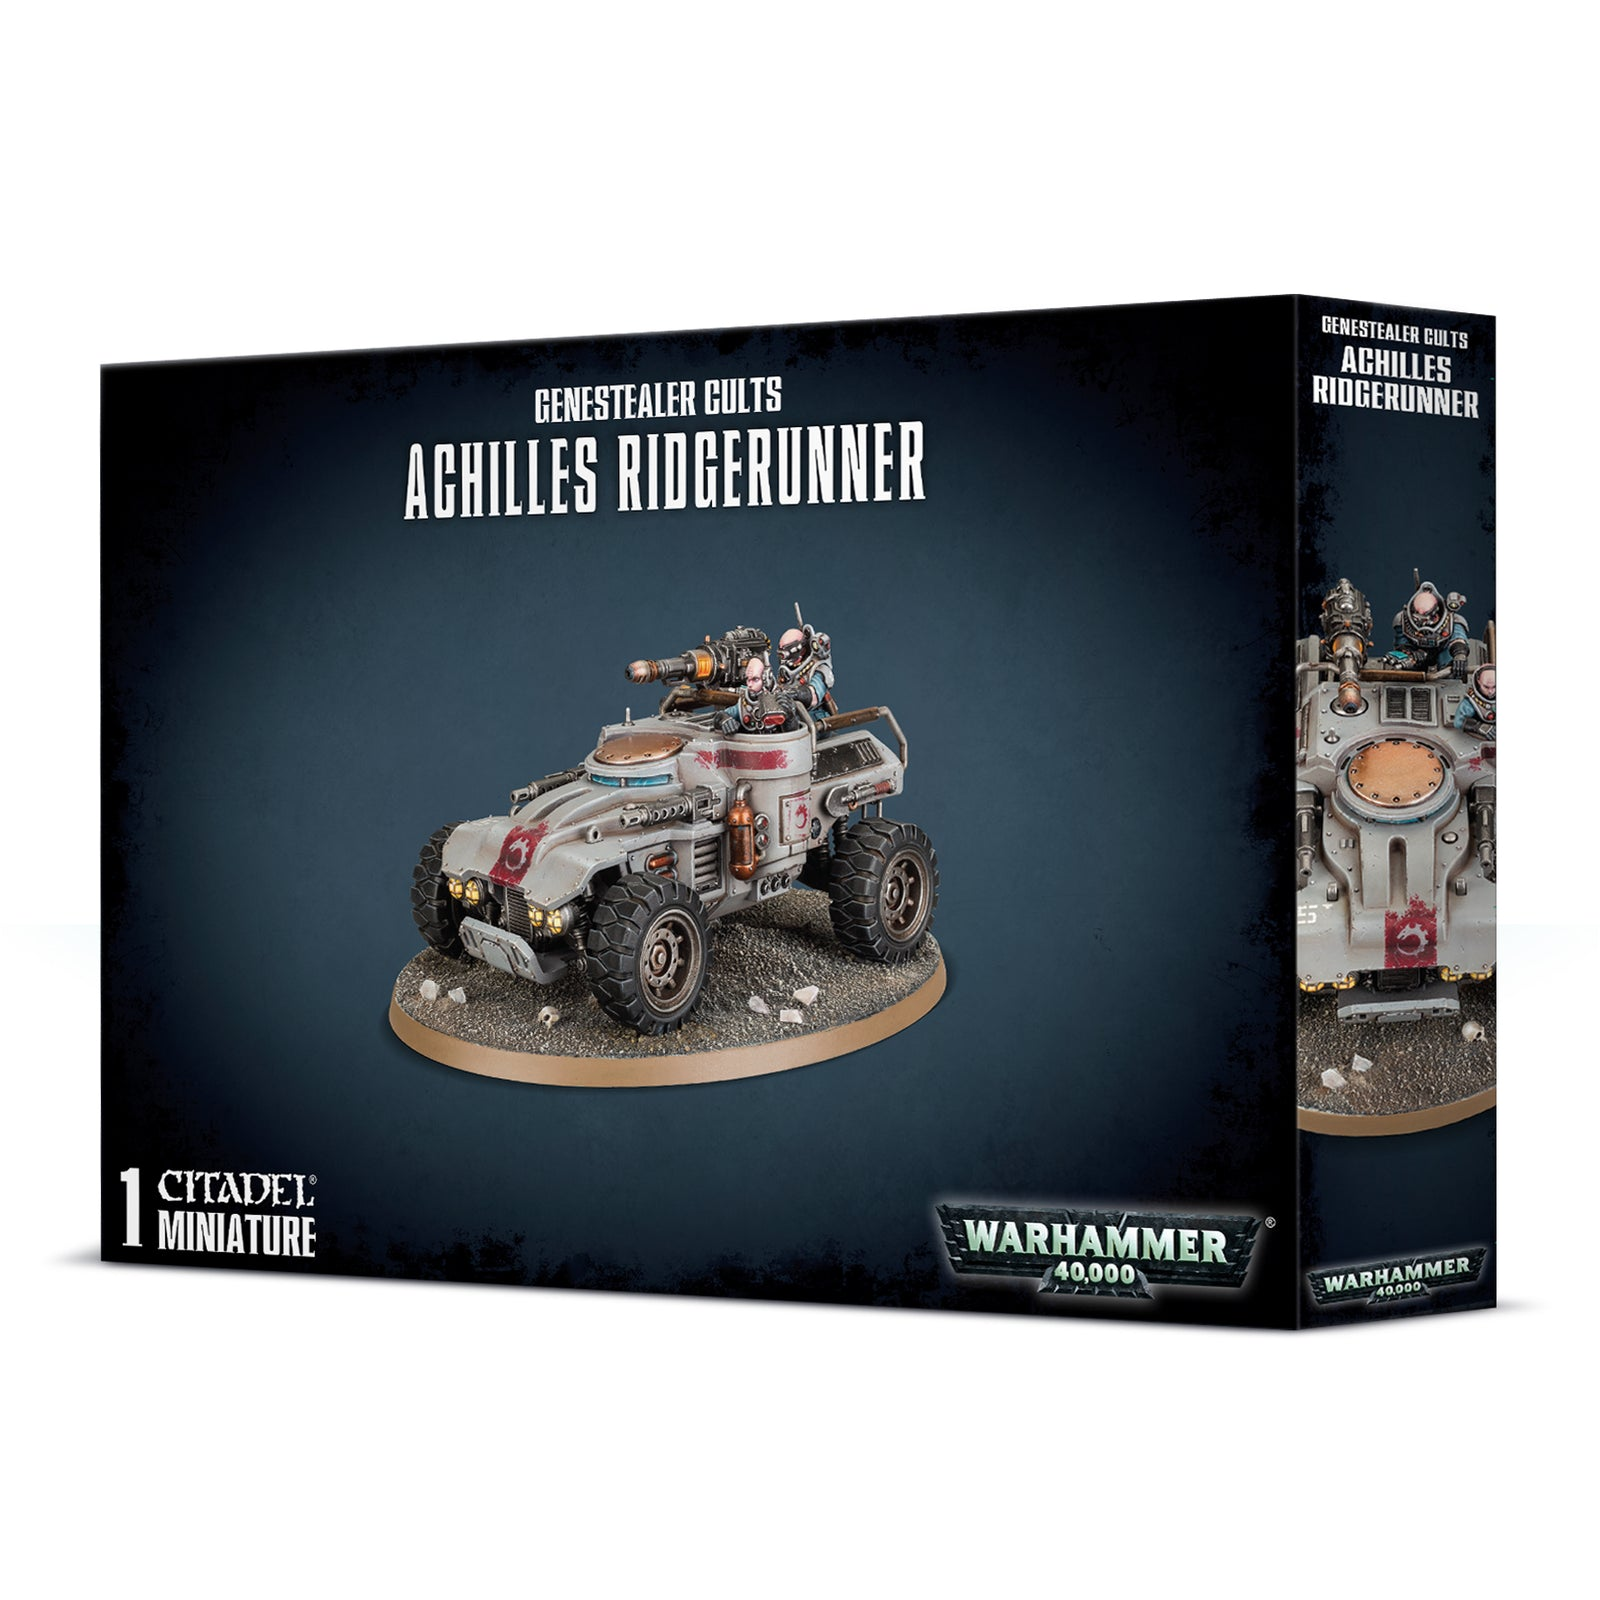 Box Packaging for Achilles Ridgerunner